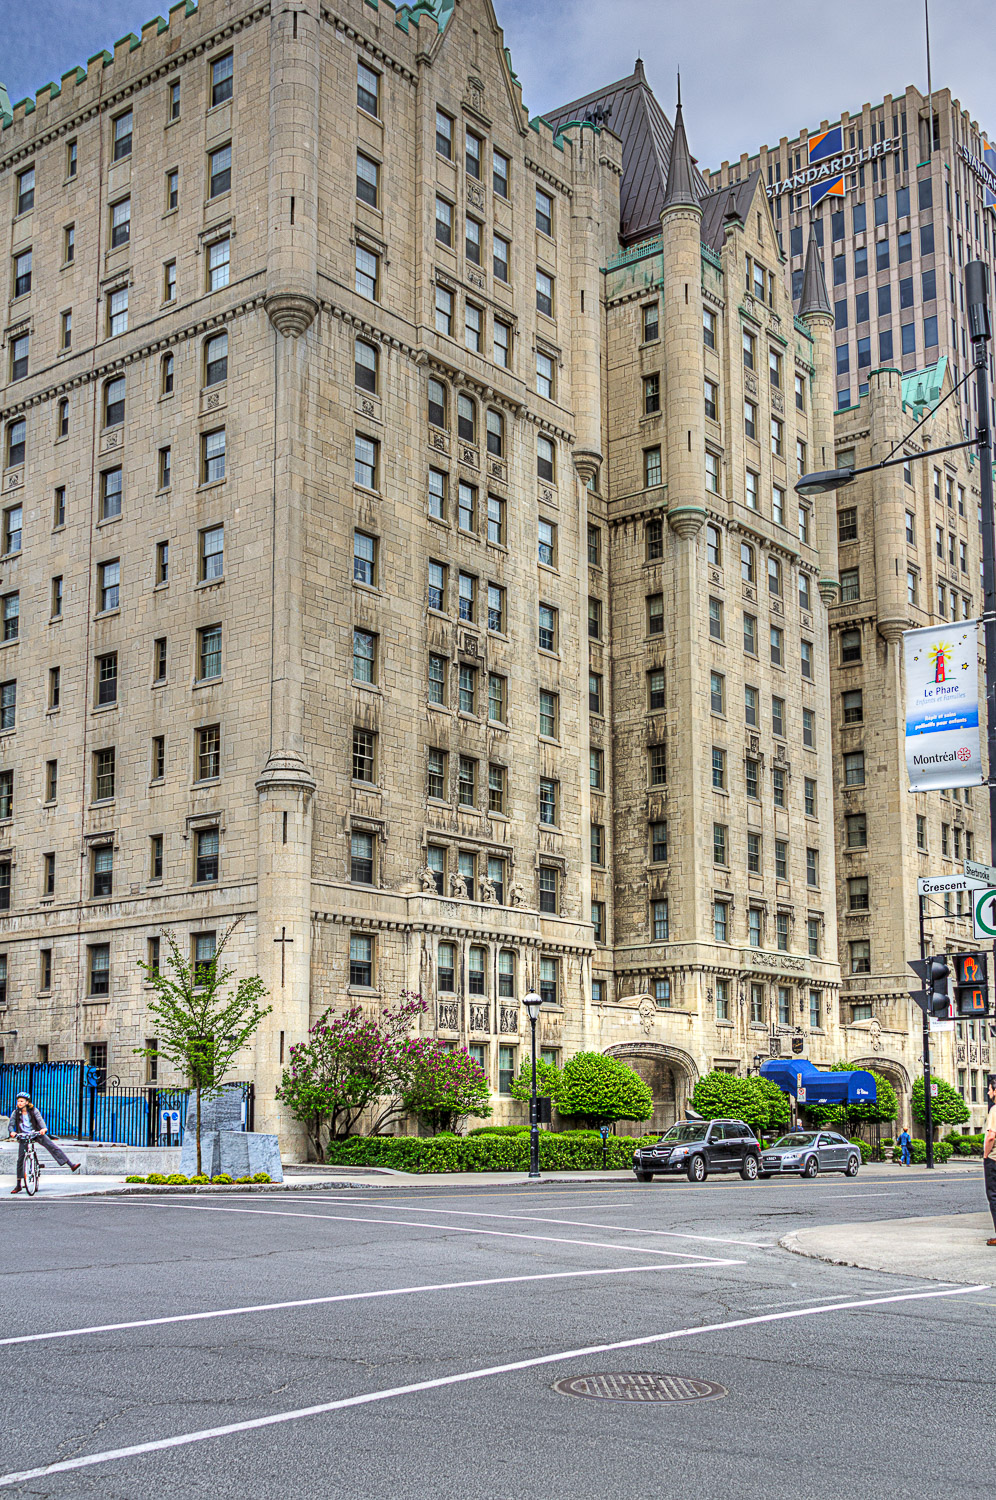 20120512_Montreal in HDR__MG_6486_87_89_90_95_96_X.jpg